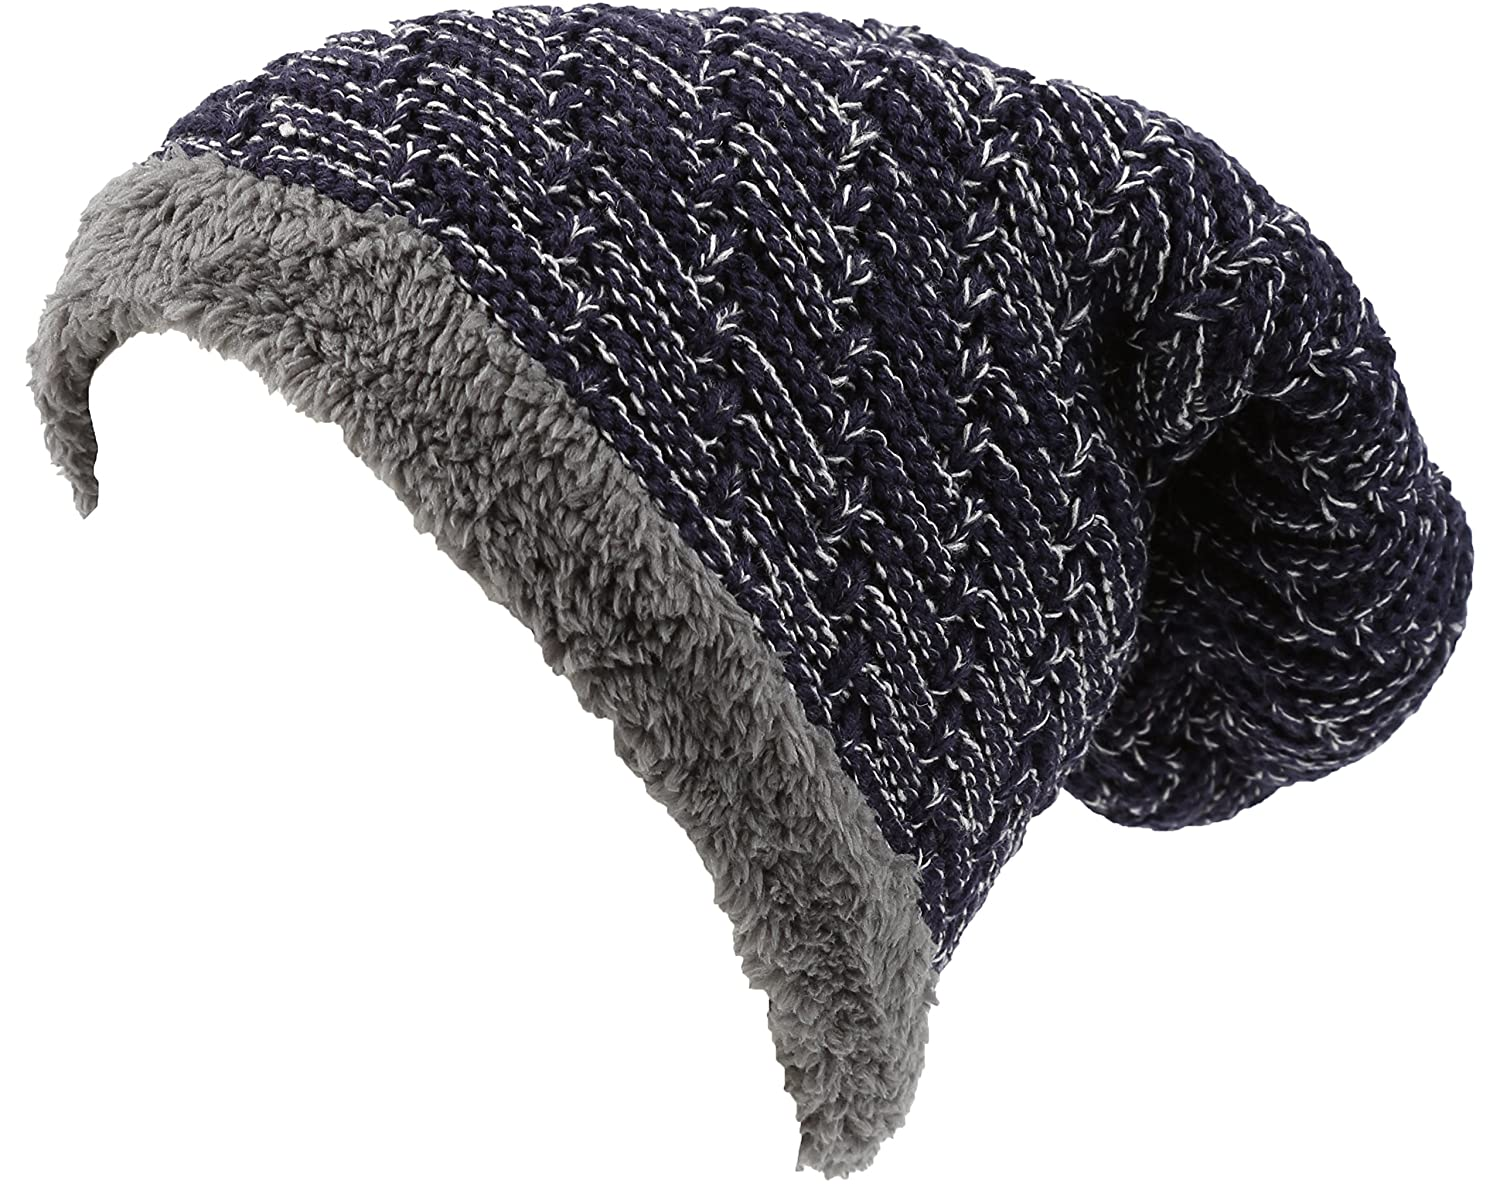 d46dd9f7023 Sakkas 16142 - Veloce Tall Long Heathered Faux Fur Shearling Lined Unisex Beanie  Hat - Brown - OS  Amazon.co.uk  Clothing